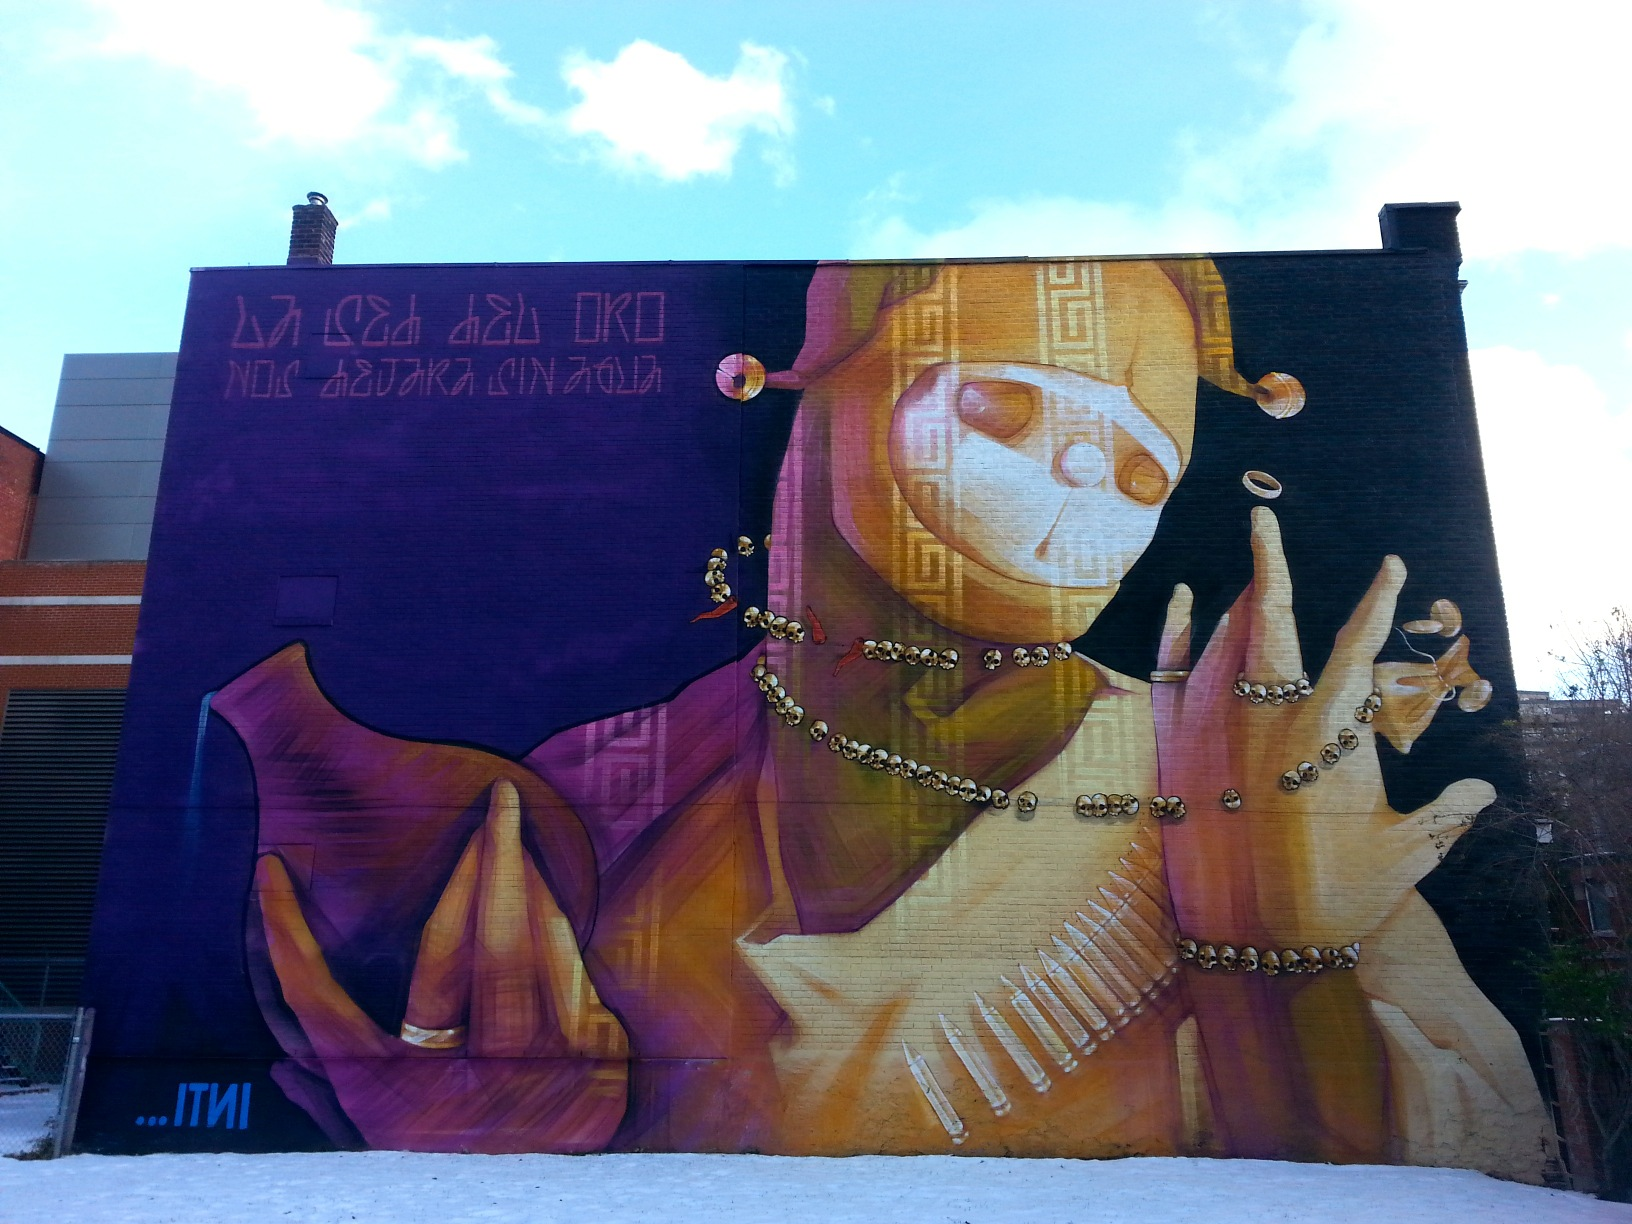 Itni. MURAL Festival, 2014. Photo by Annie Shreeve